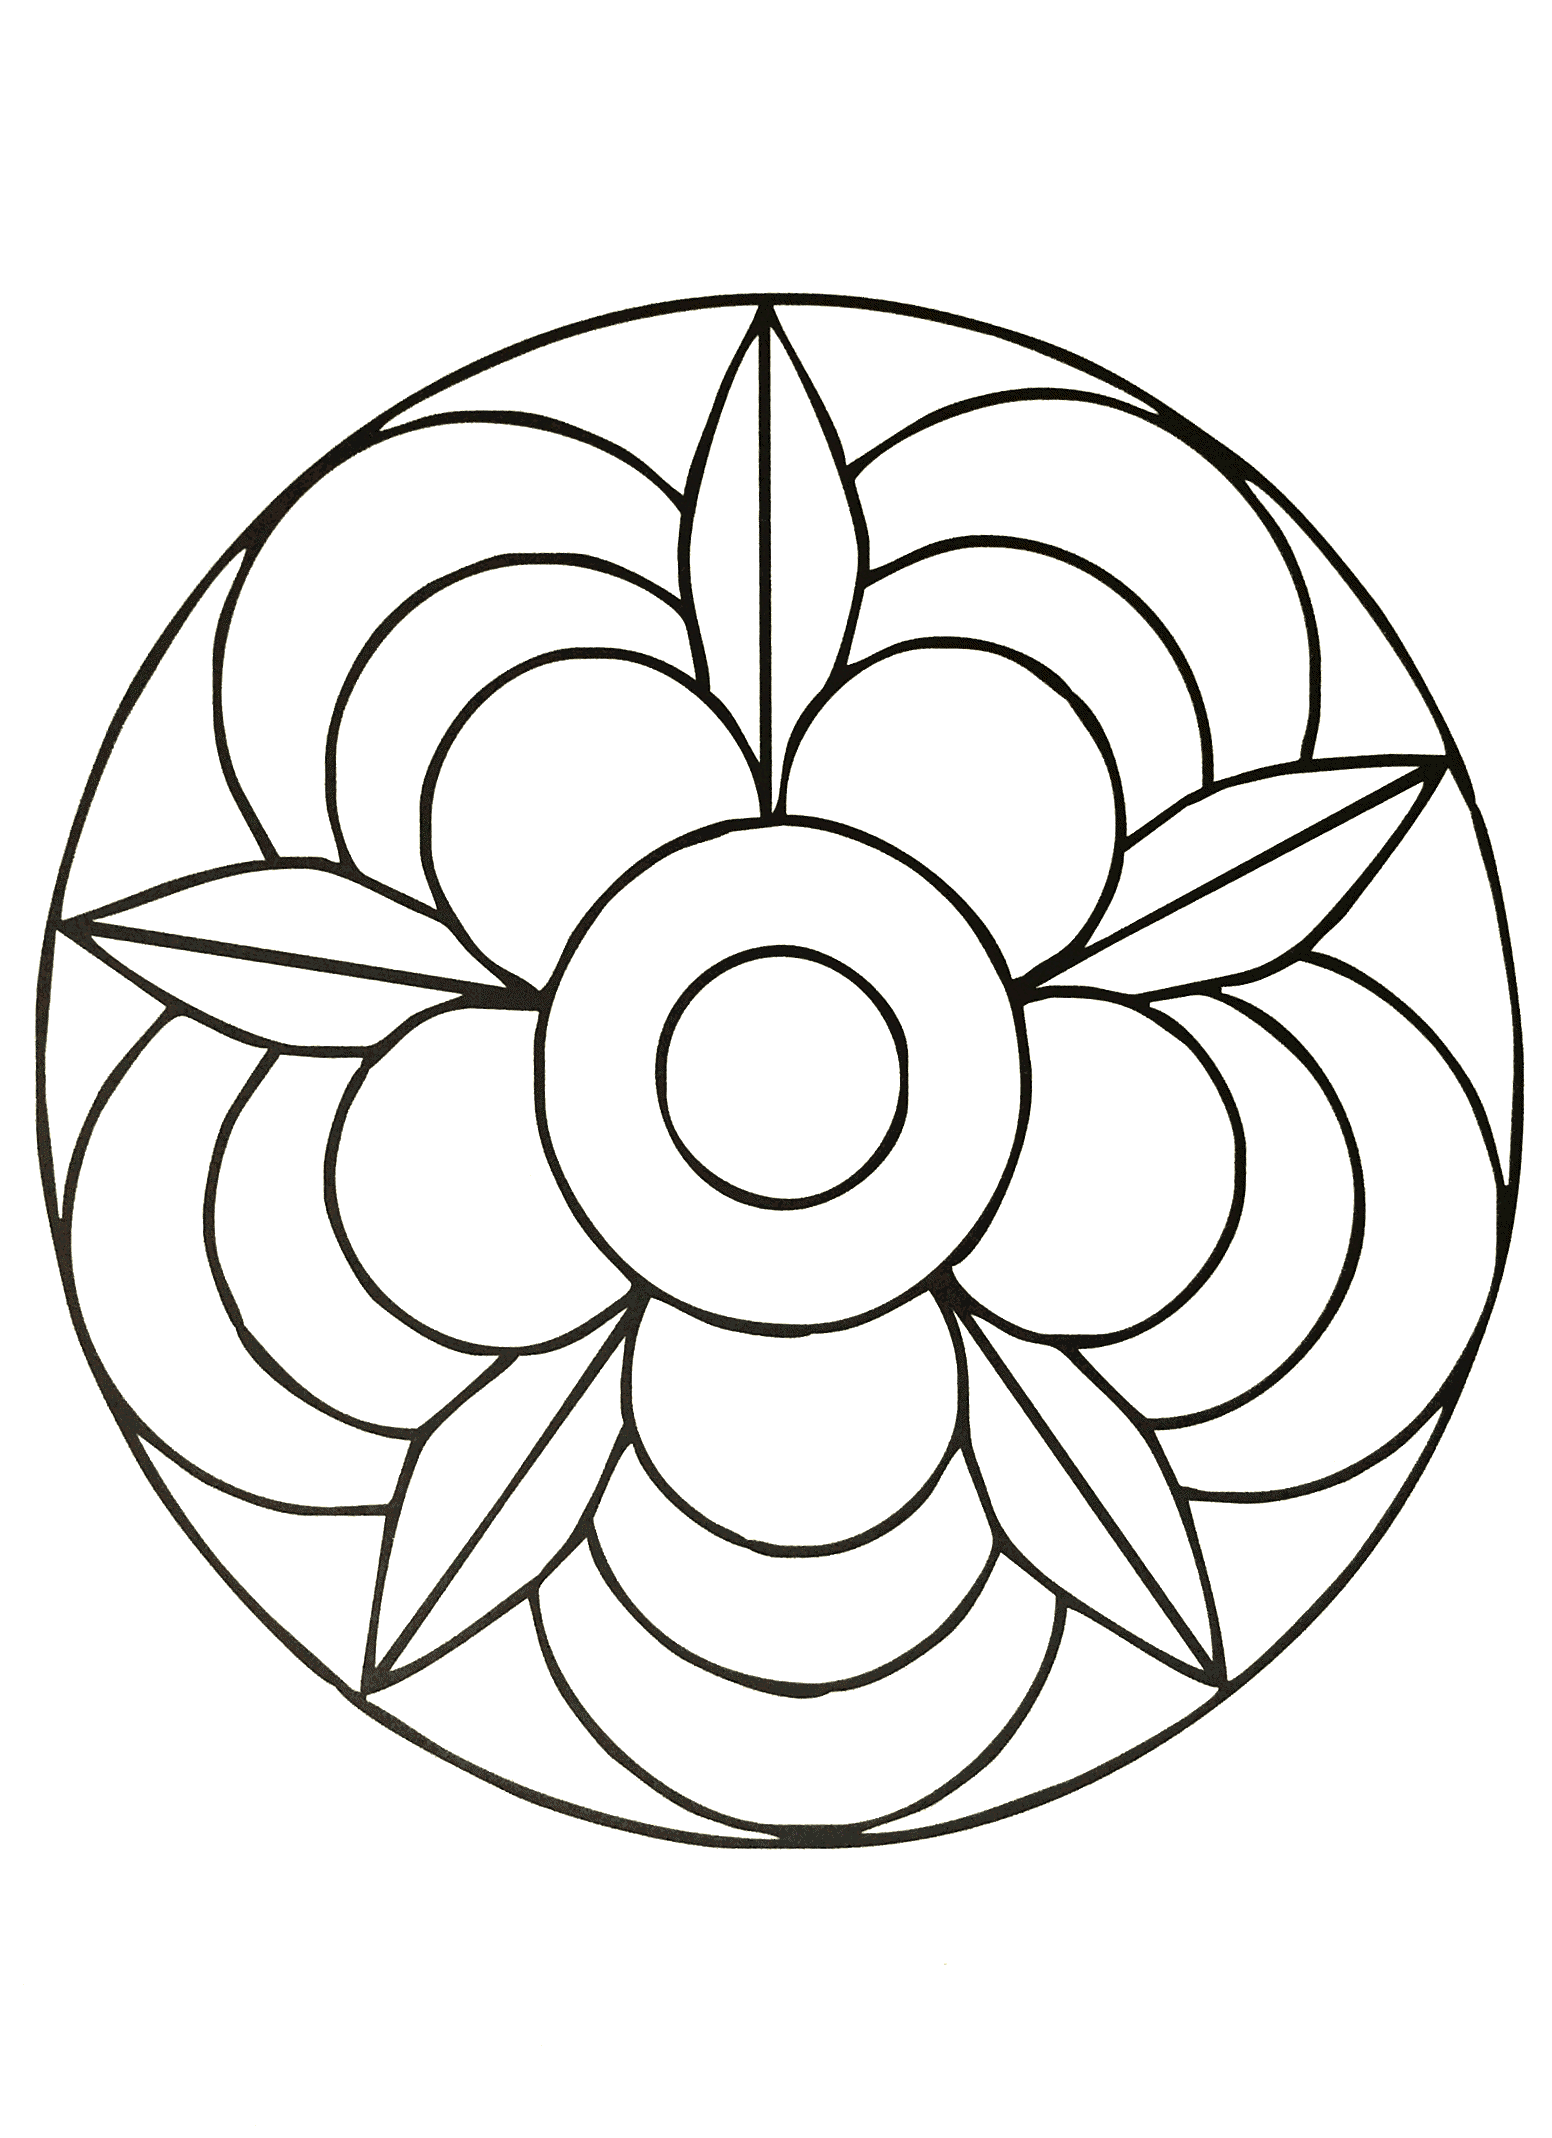 coloring pages for kids simple mandala 40 print - Simple Mandala Coloring Pages